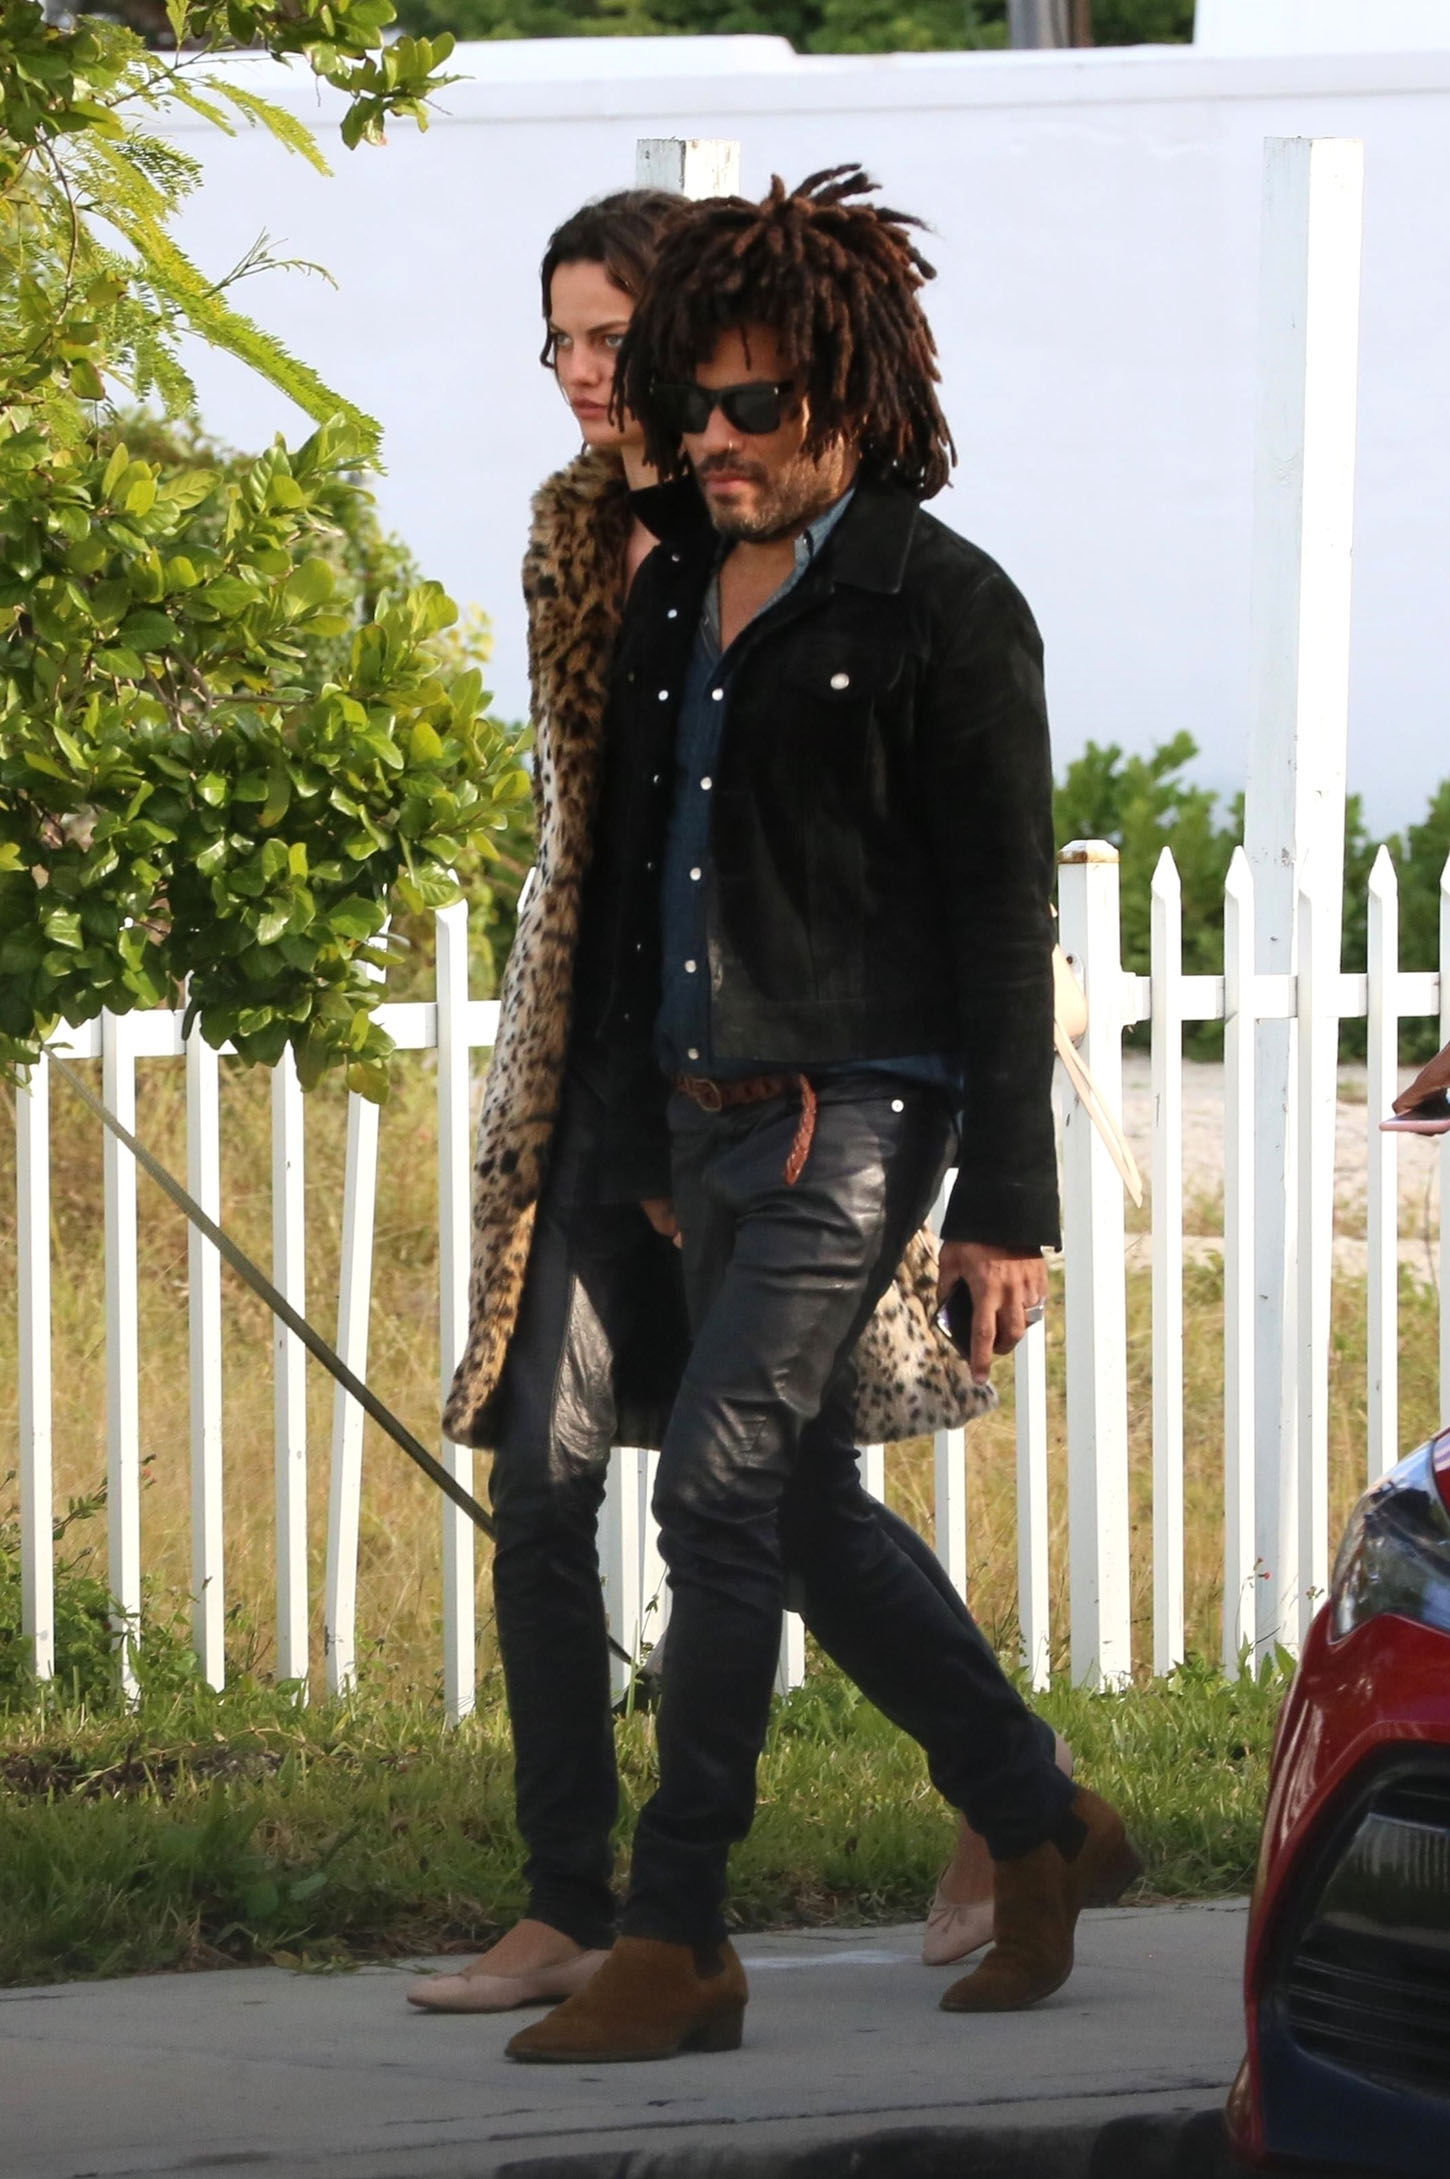 Miami Beach, FL  - *EXCLUSIVE*  - Lenny Kravitz enjoys a day out with his new girlfriend. The new couple lunch with Barbara Becker (Boris Becker's ex wife). The new couple look happy as they kiss and hug while out for a stroll.  Pictured: Lenny Kravitz  BACKGRID USA 7 JANUARY 2018, Image: 359503016, License: Rights-managed, Restrictions: , Model Release: no, Credit line: Profimedia, AKM-GSI